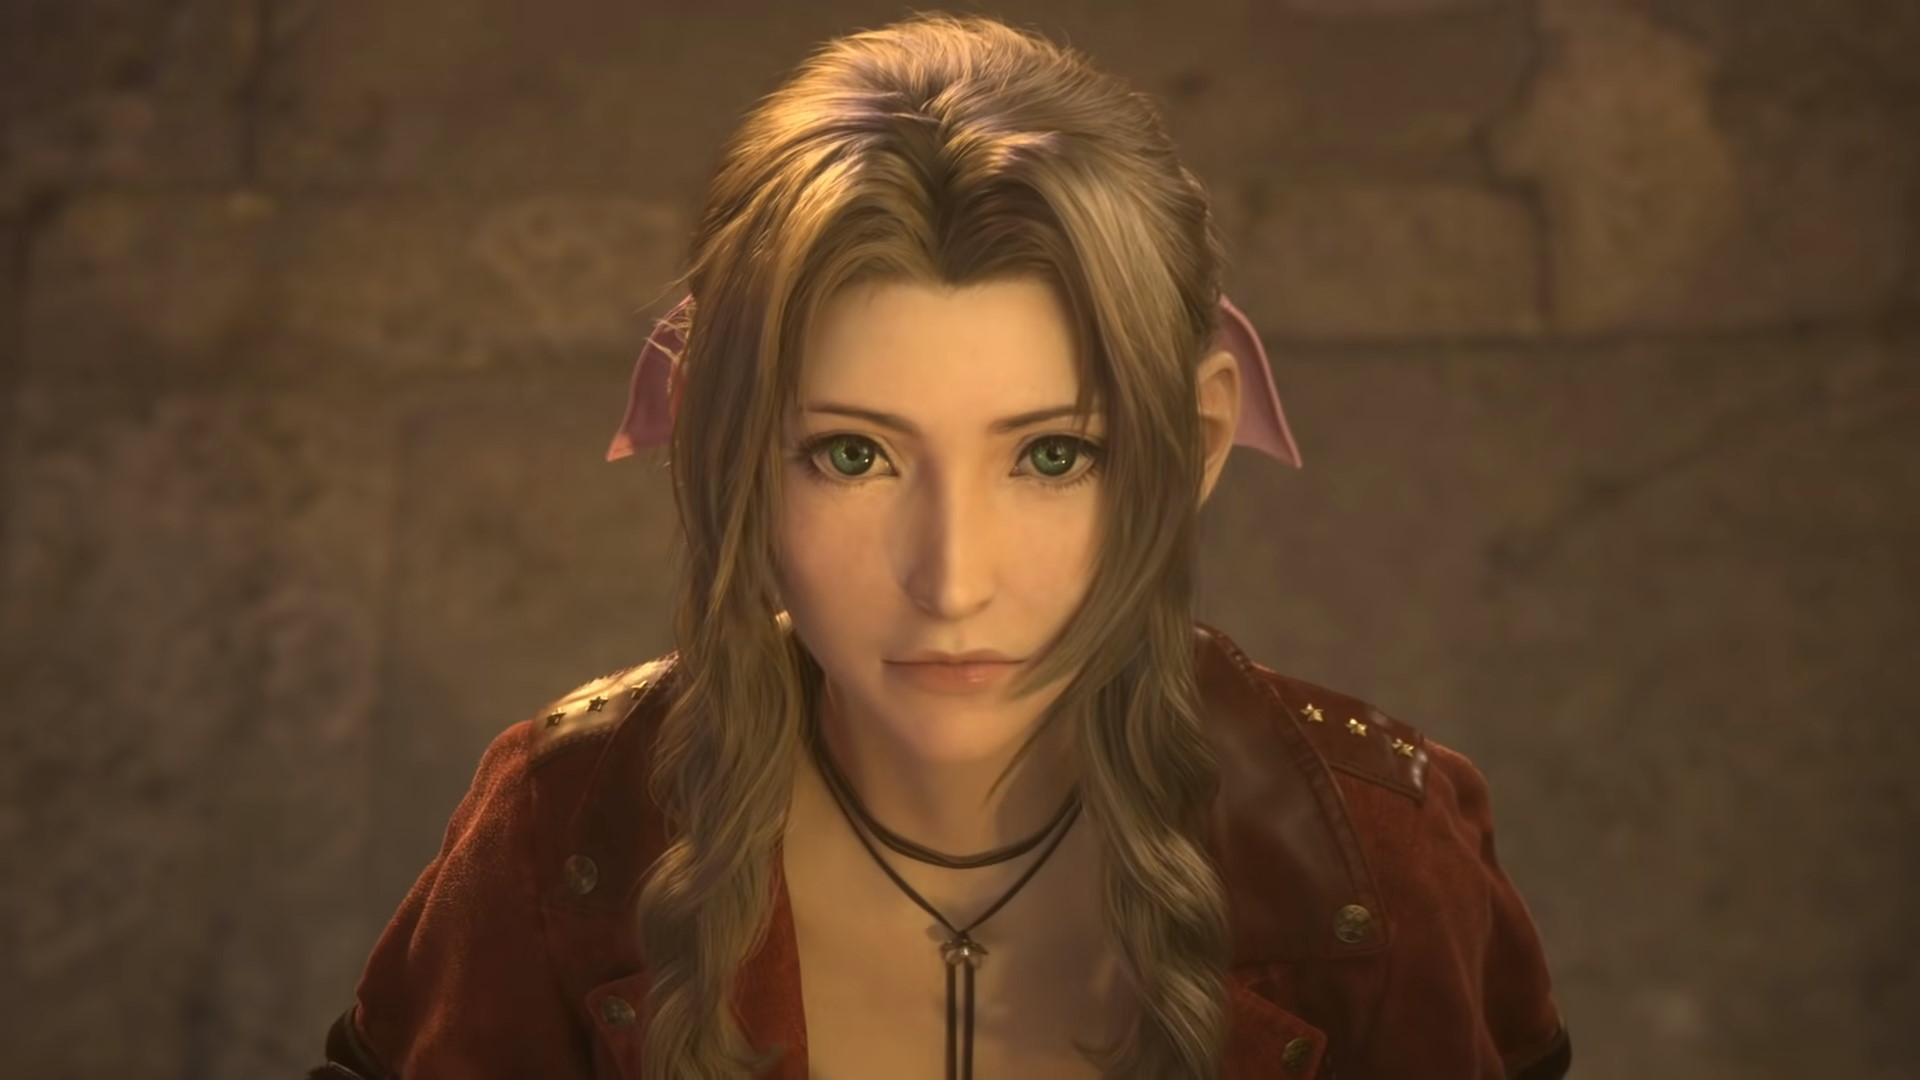 Final Fantasy 7 Remake Ending Explained What It Means And The